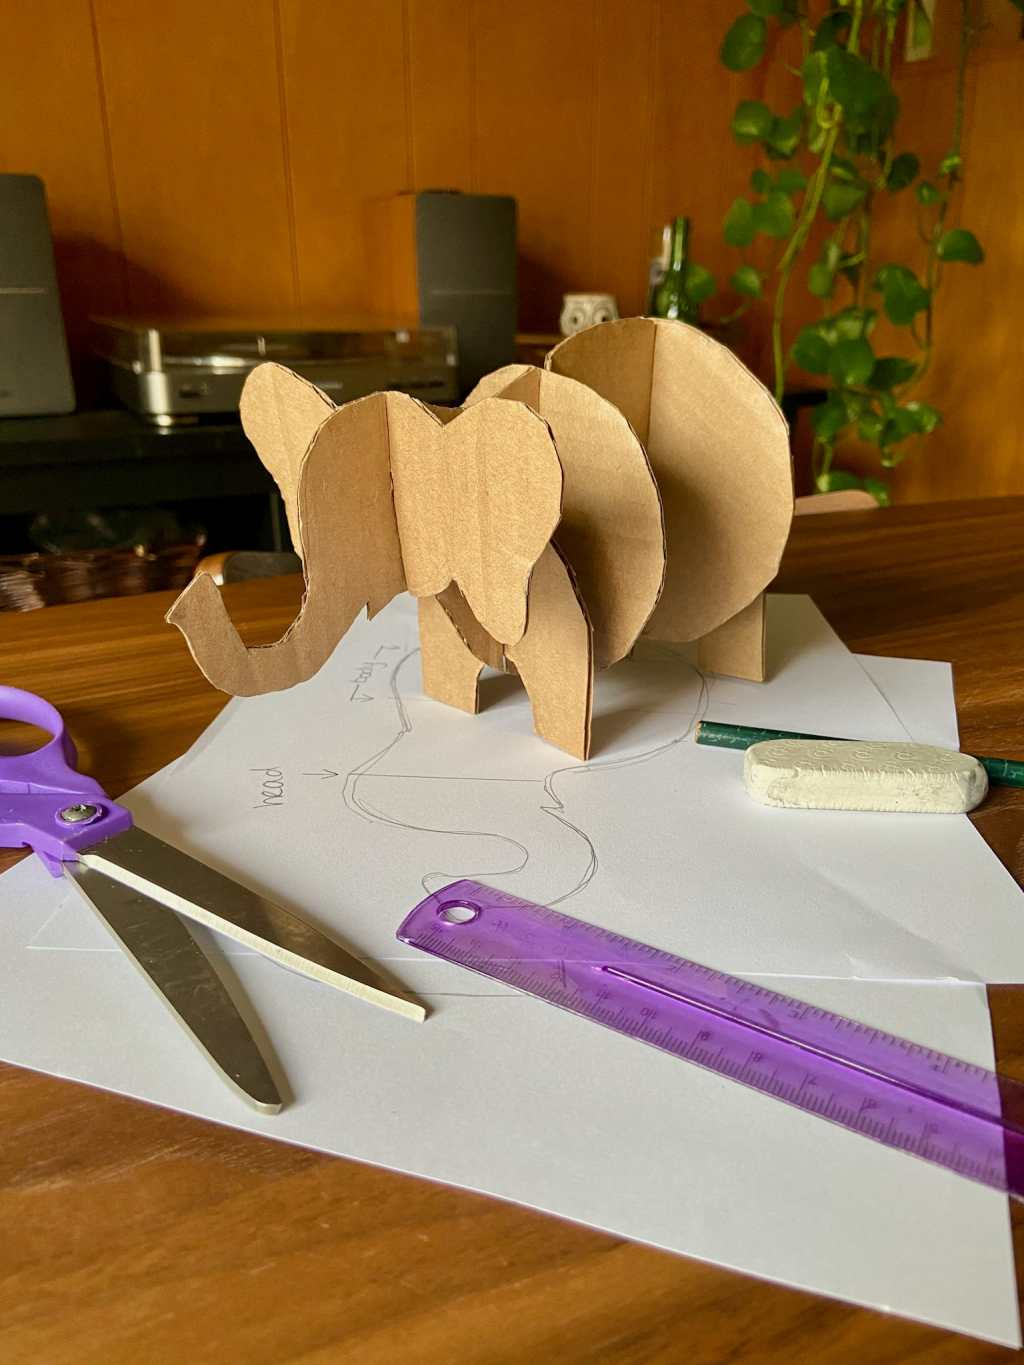 Craft at Home: Cardboard Elephant Sculpture